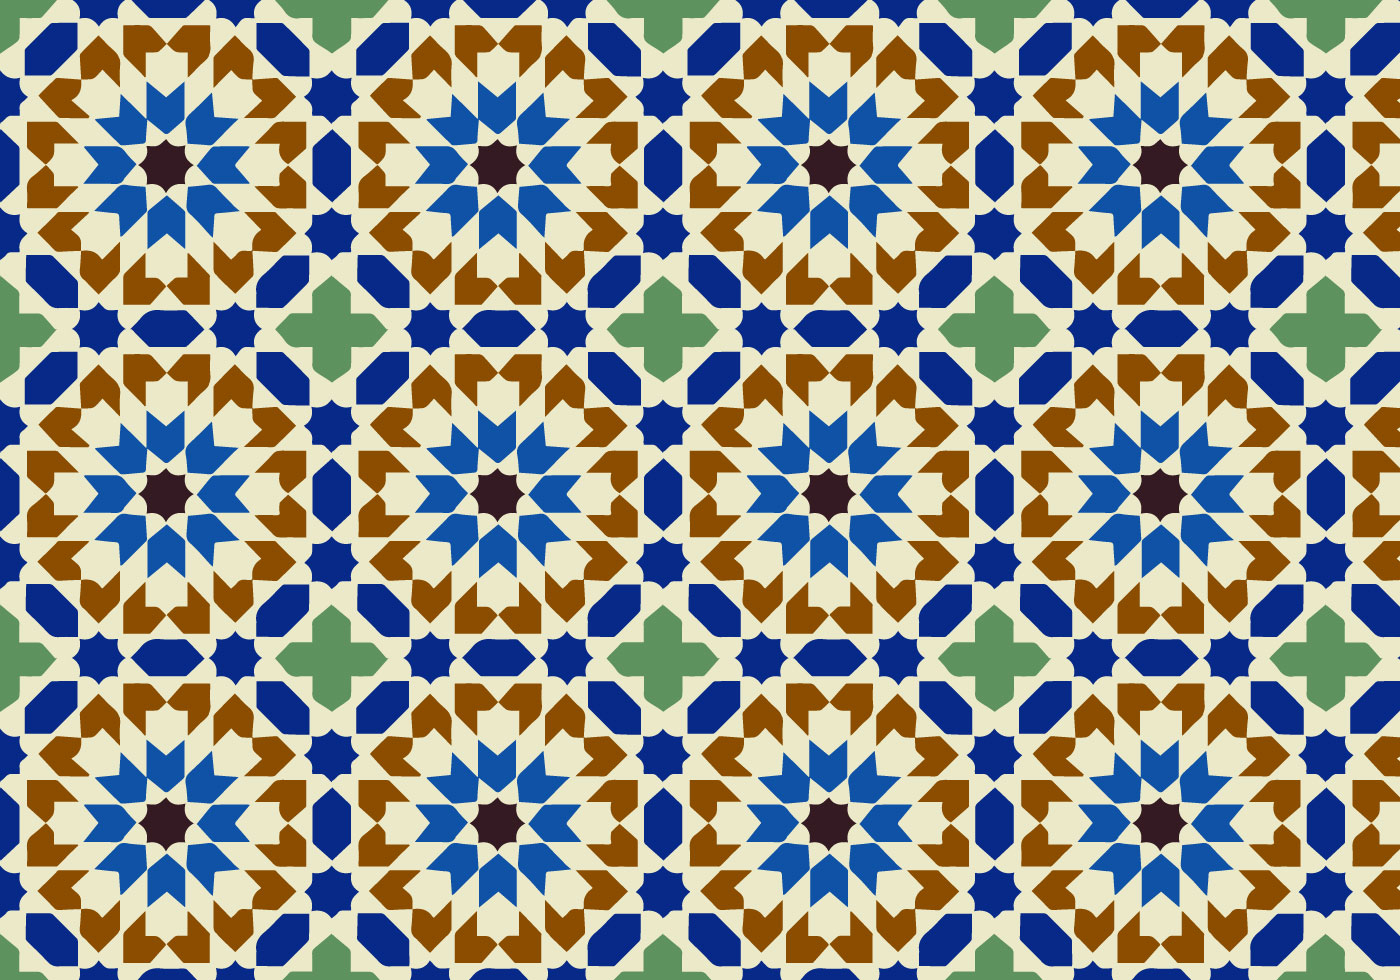 Moroccan Pattern Free Vector Art - (17207 Free Downloads) - Free Printable Moroccan Pattern